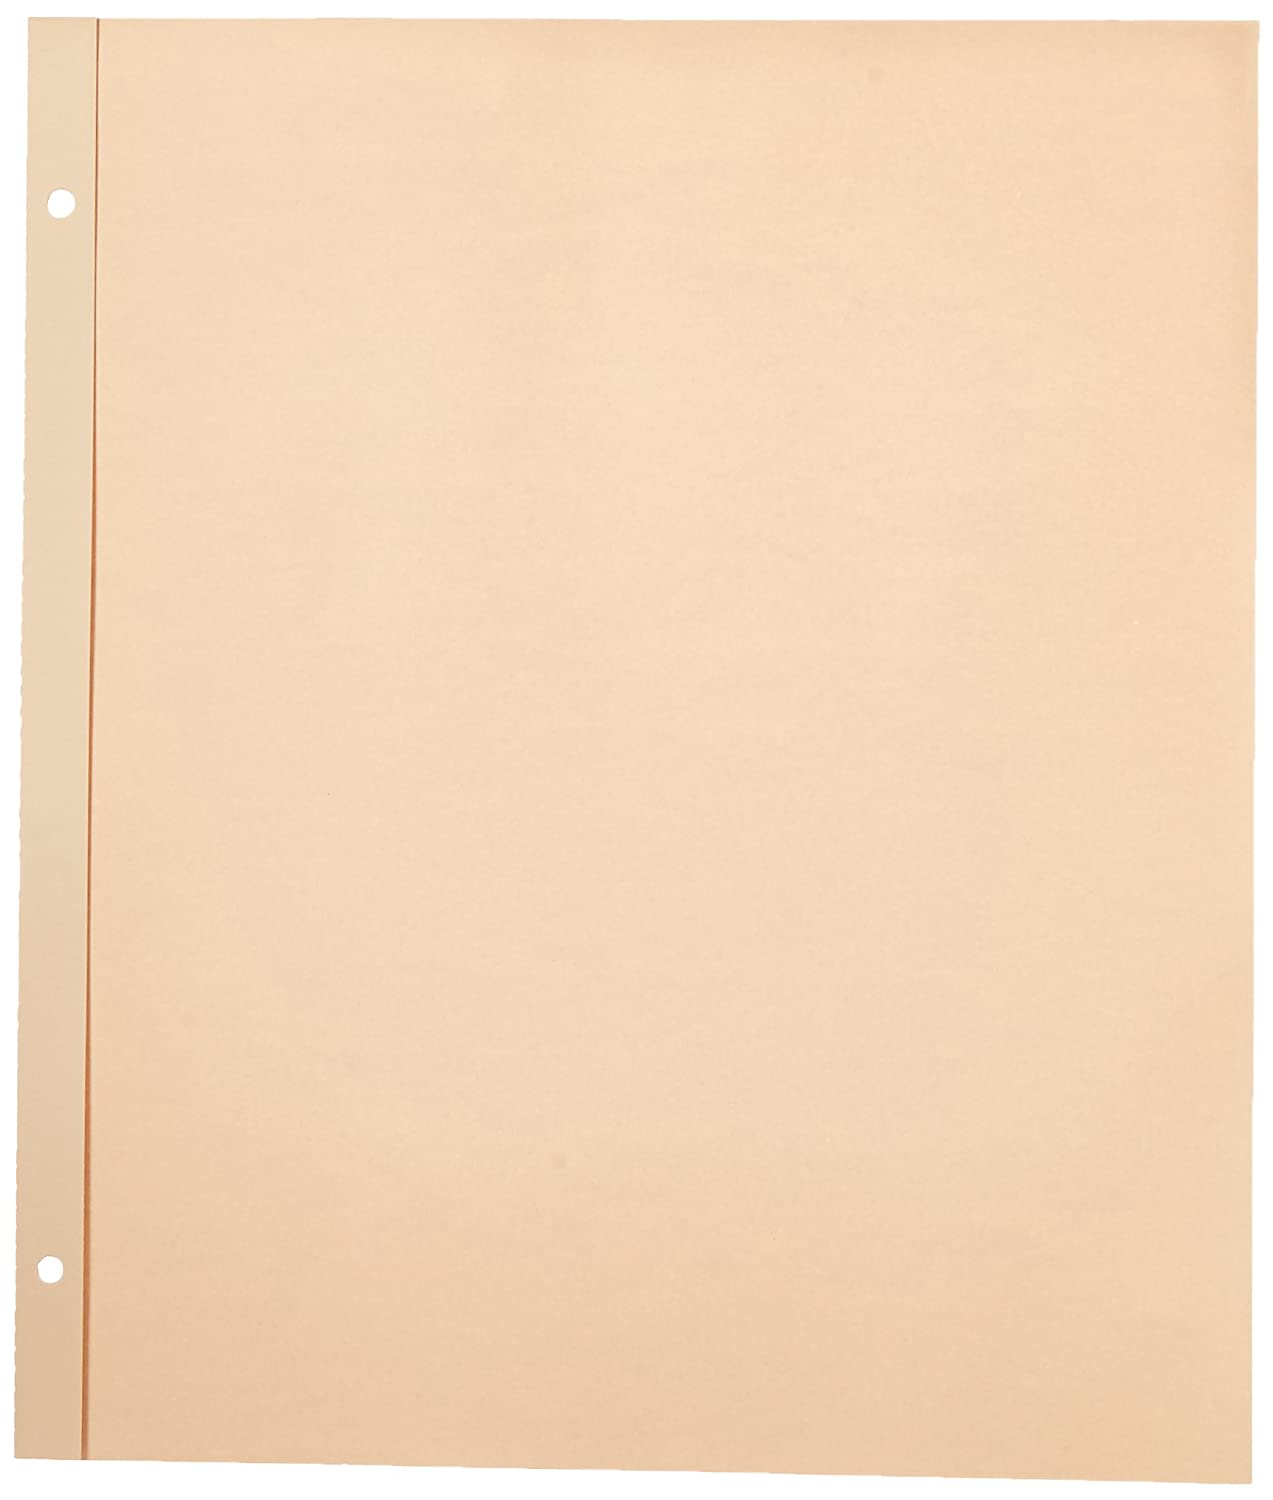 Pioneer 11 x 14-inch Post Bound Refill Pages, Pack of 25, Transparent SJ-50R